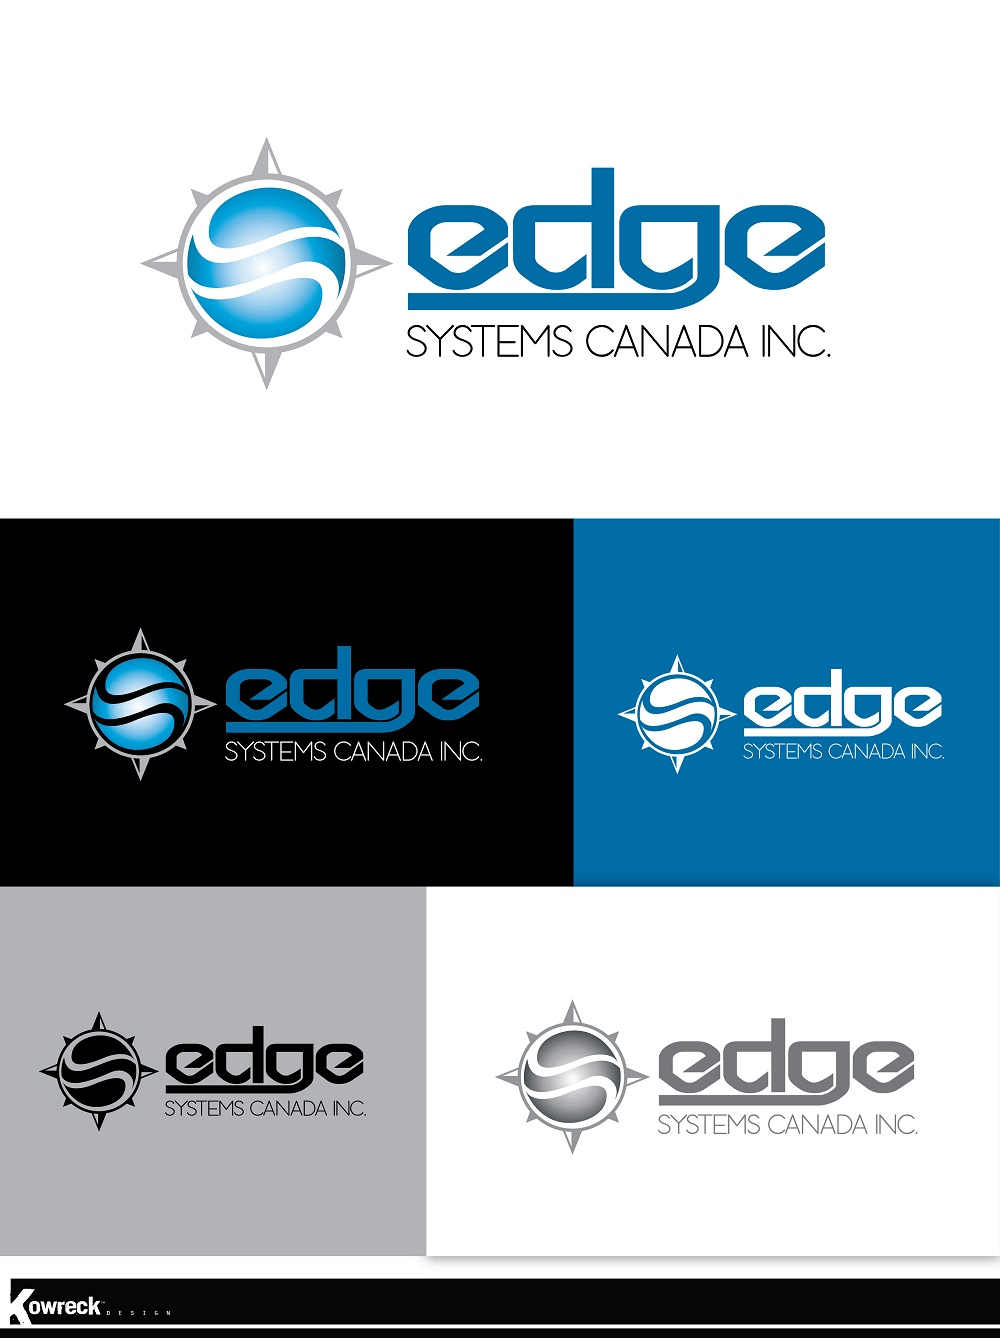 New Logo Design For Edge Systems Canada Inc HiretheWorld